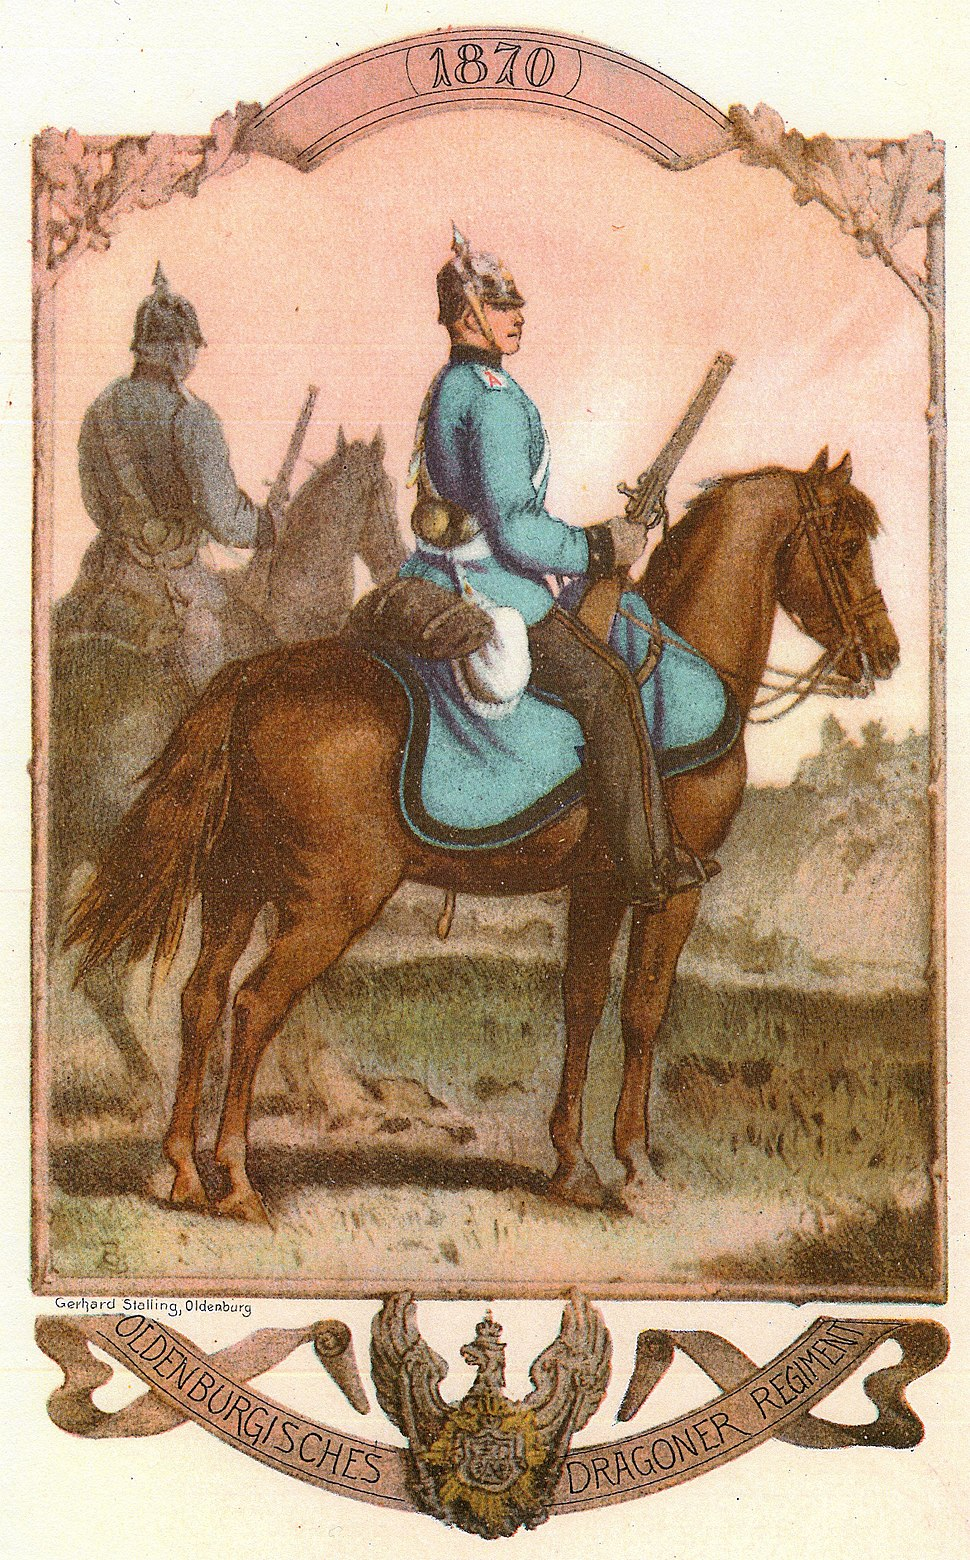 Dragoner des Oldenburgischen Dragoner-Regiments Nr. 19, 1870.